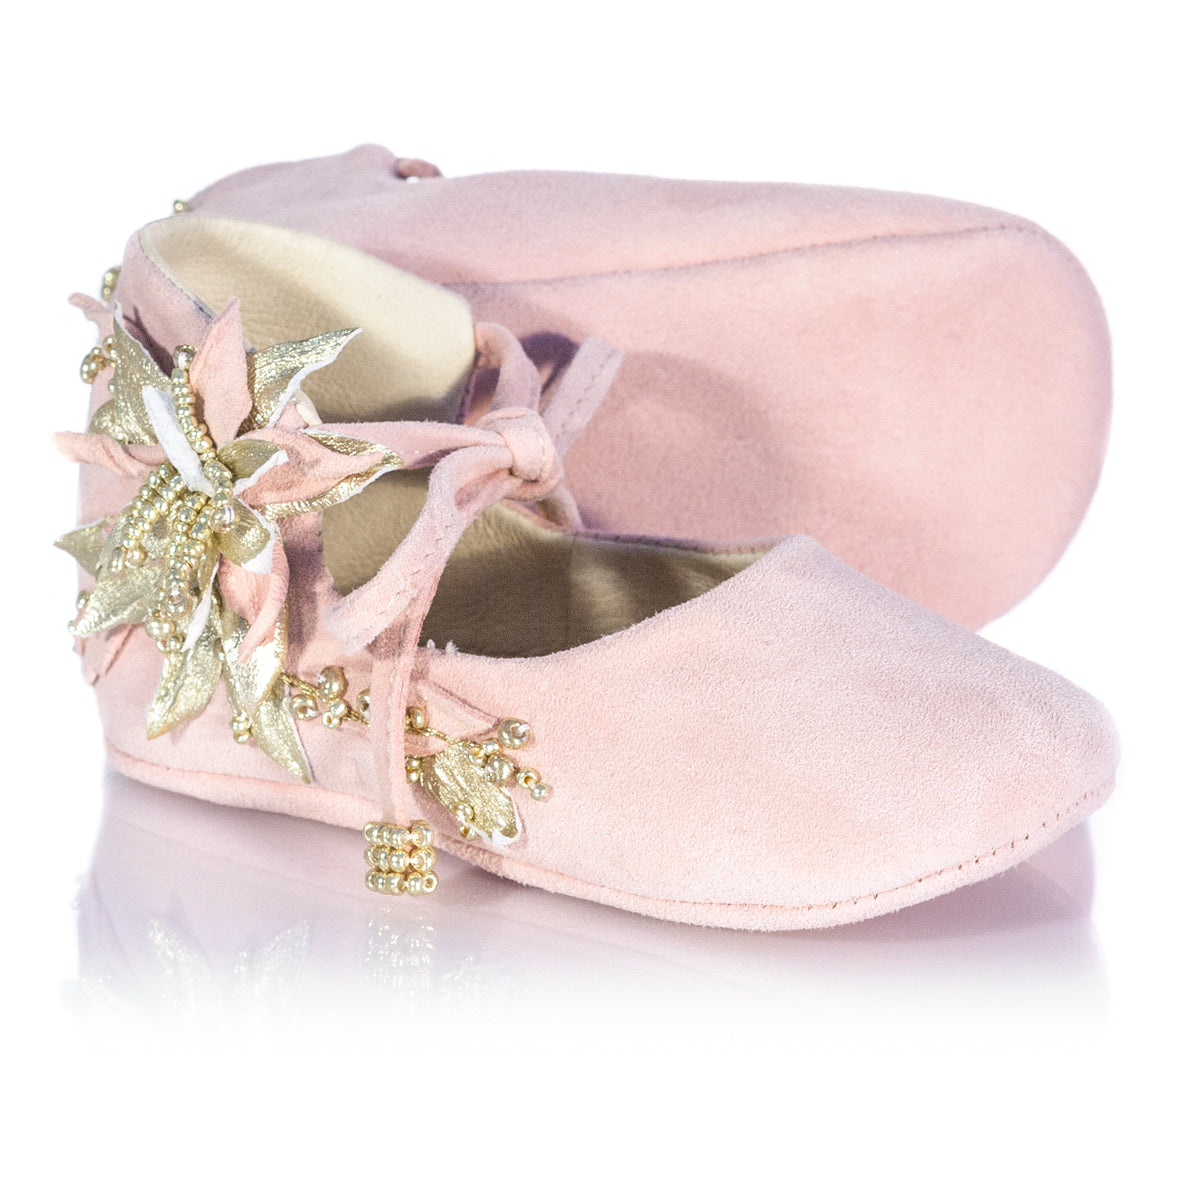 Vibys-Baby-Shoes-Water-Lily-Pink-sole-view